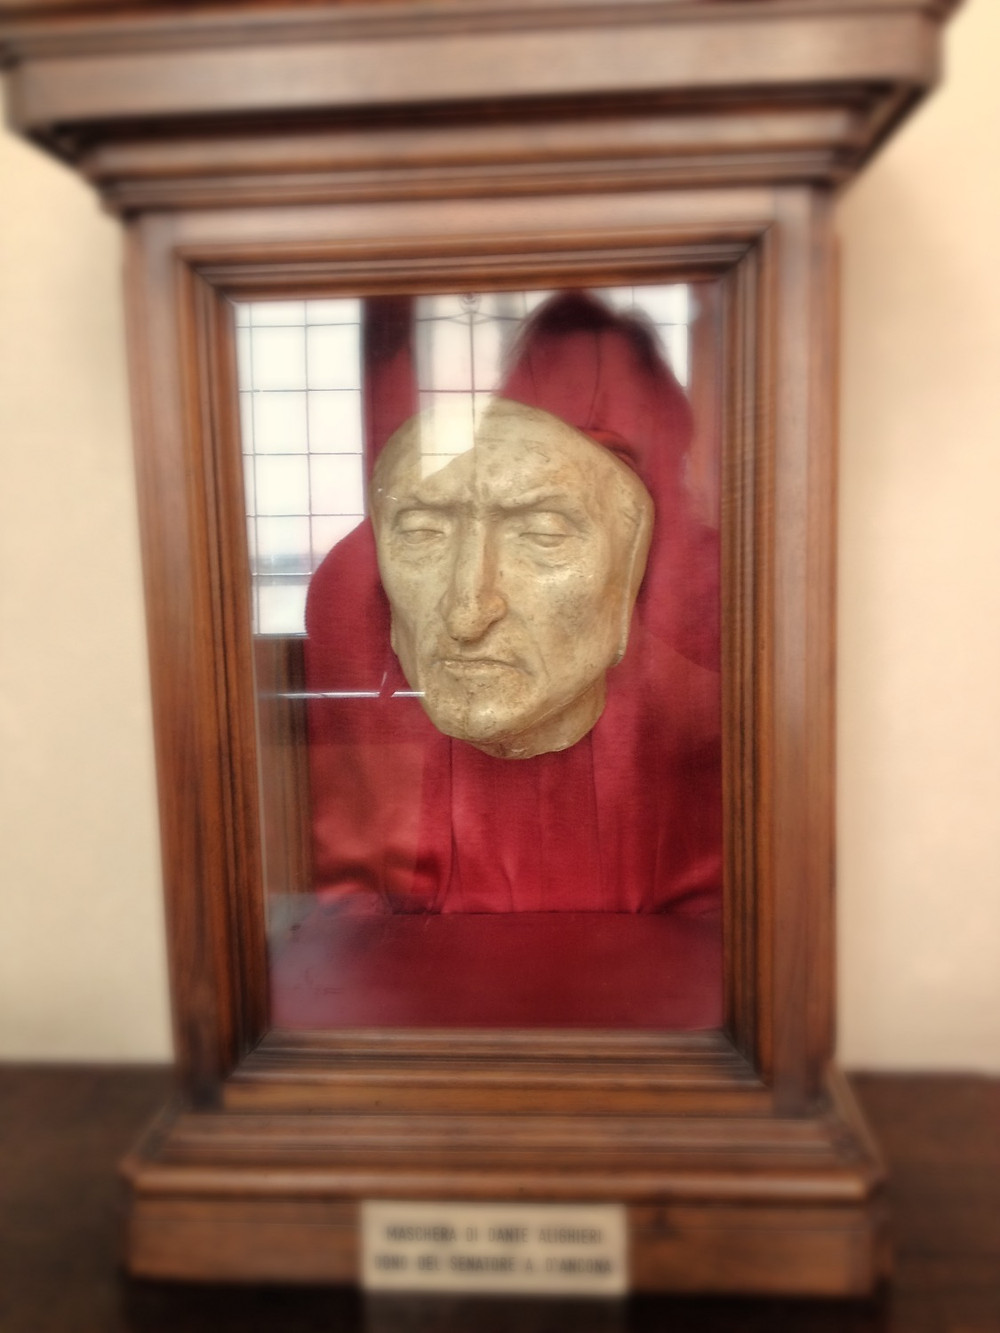 Dante's death mask. Photo by Diana Dinverno